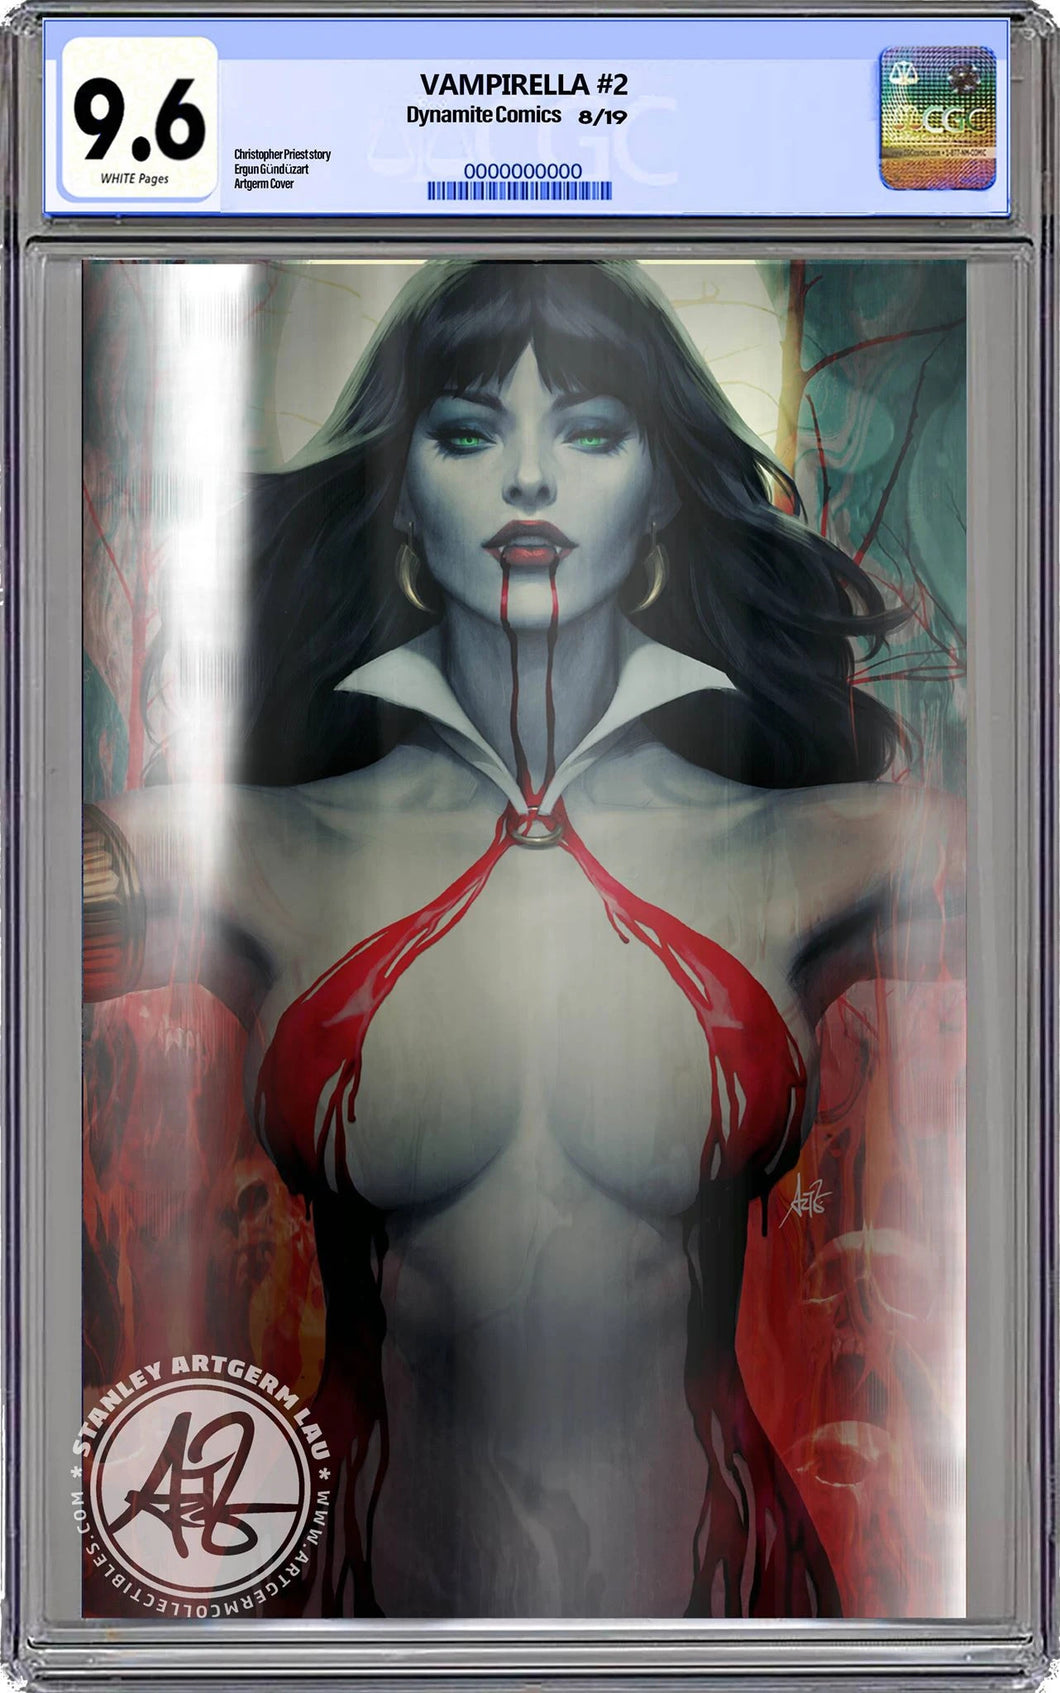 Vampirella #2 FOIL Virgin Artgerm Colletibles Exclusive CGC Graded 9.6